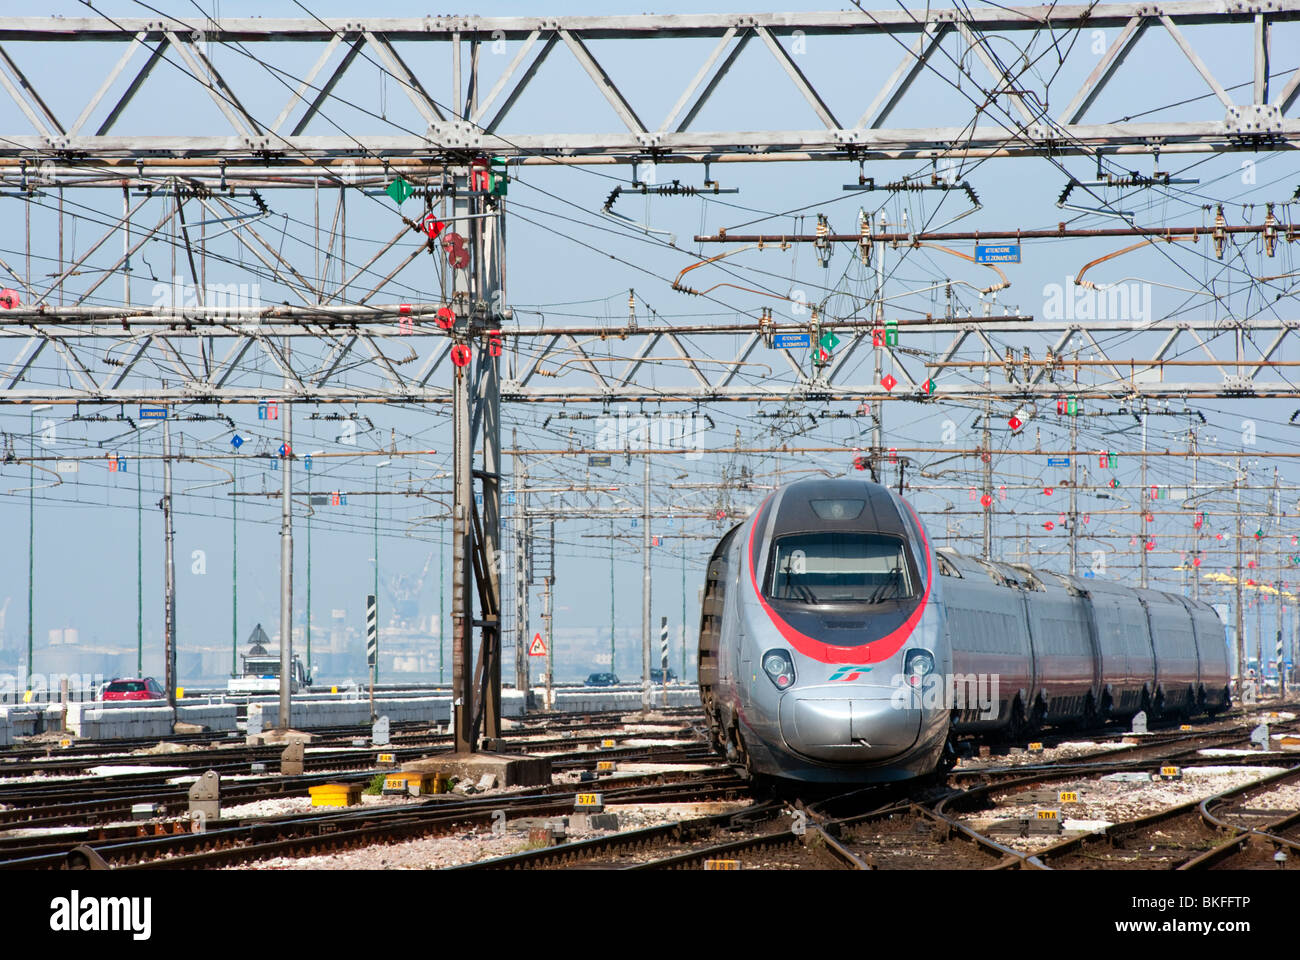 High speed Italian  Frecciarossa train at Venice railway station in Italy - Stock Image